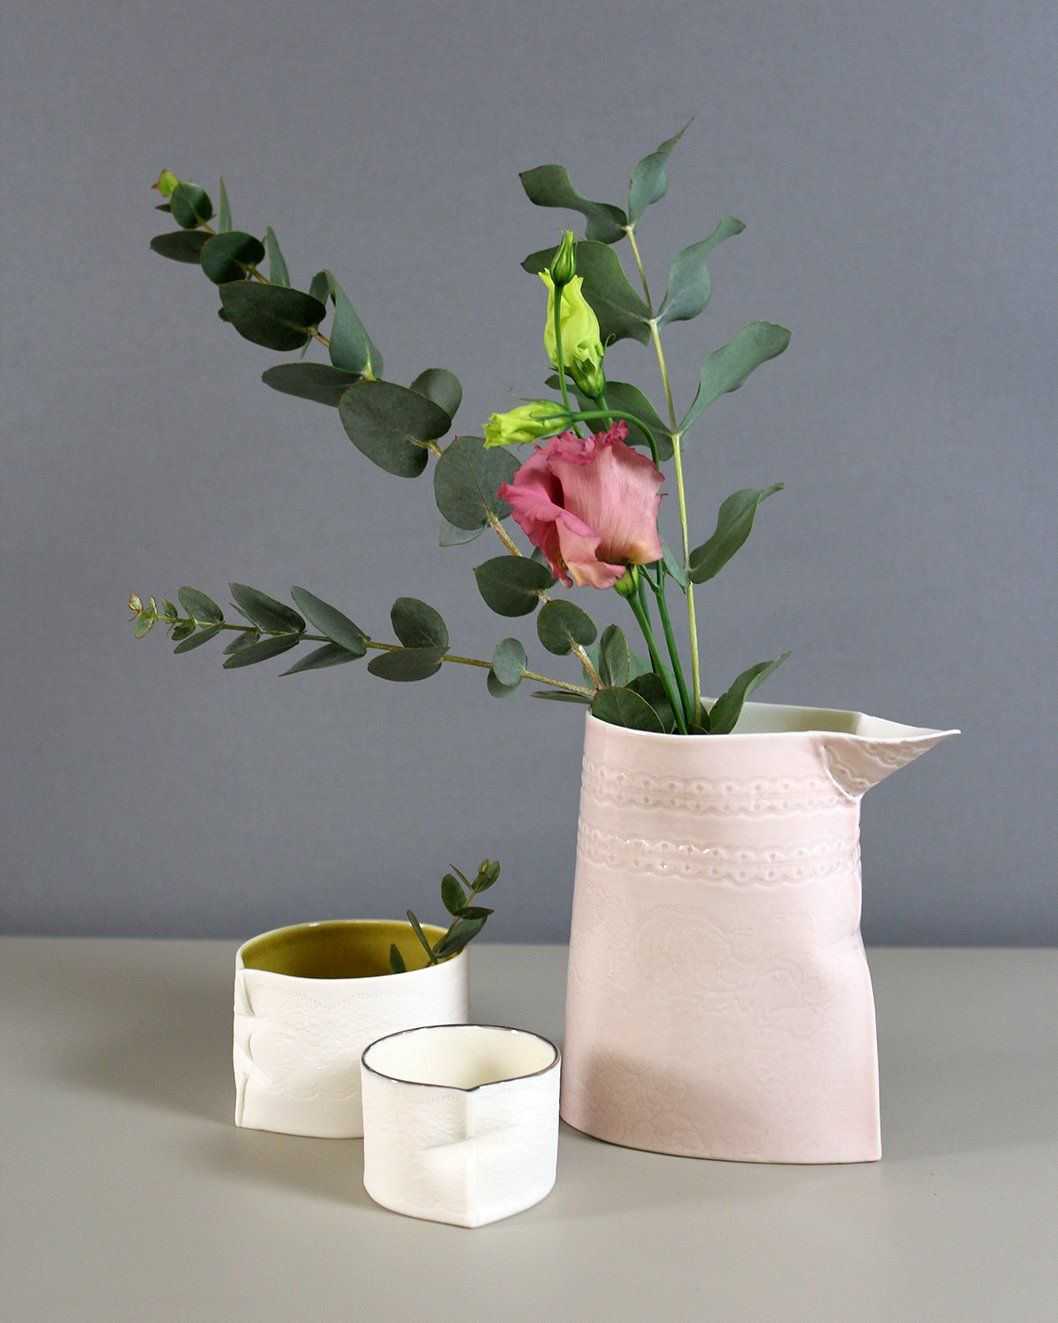 Browse Products From Louise Hall Ceramics On Tictail A Global Marketplace Of Emerging Fashion Art And Home Decor Brands Antique Roses Ceramics Ceramic Art